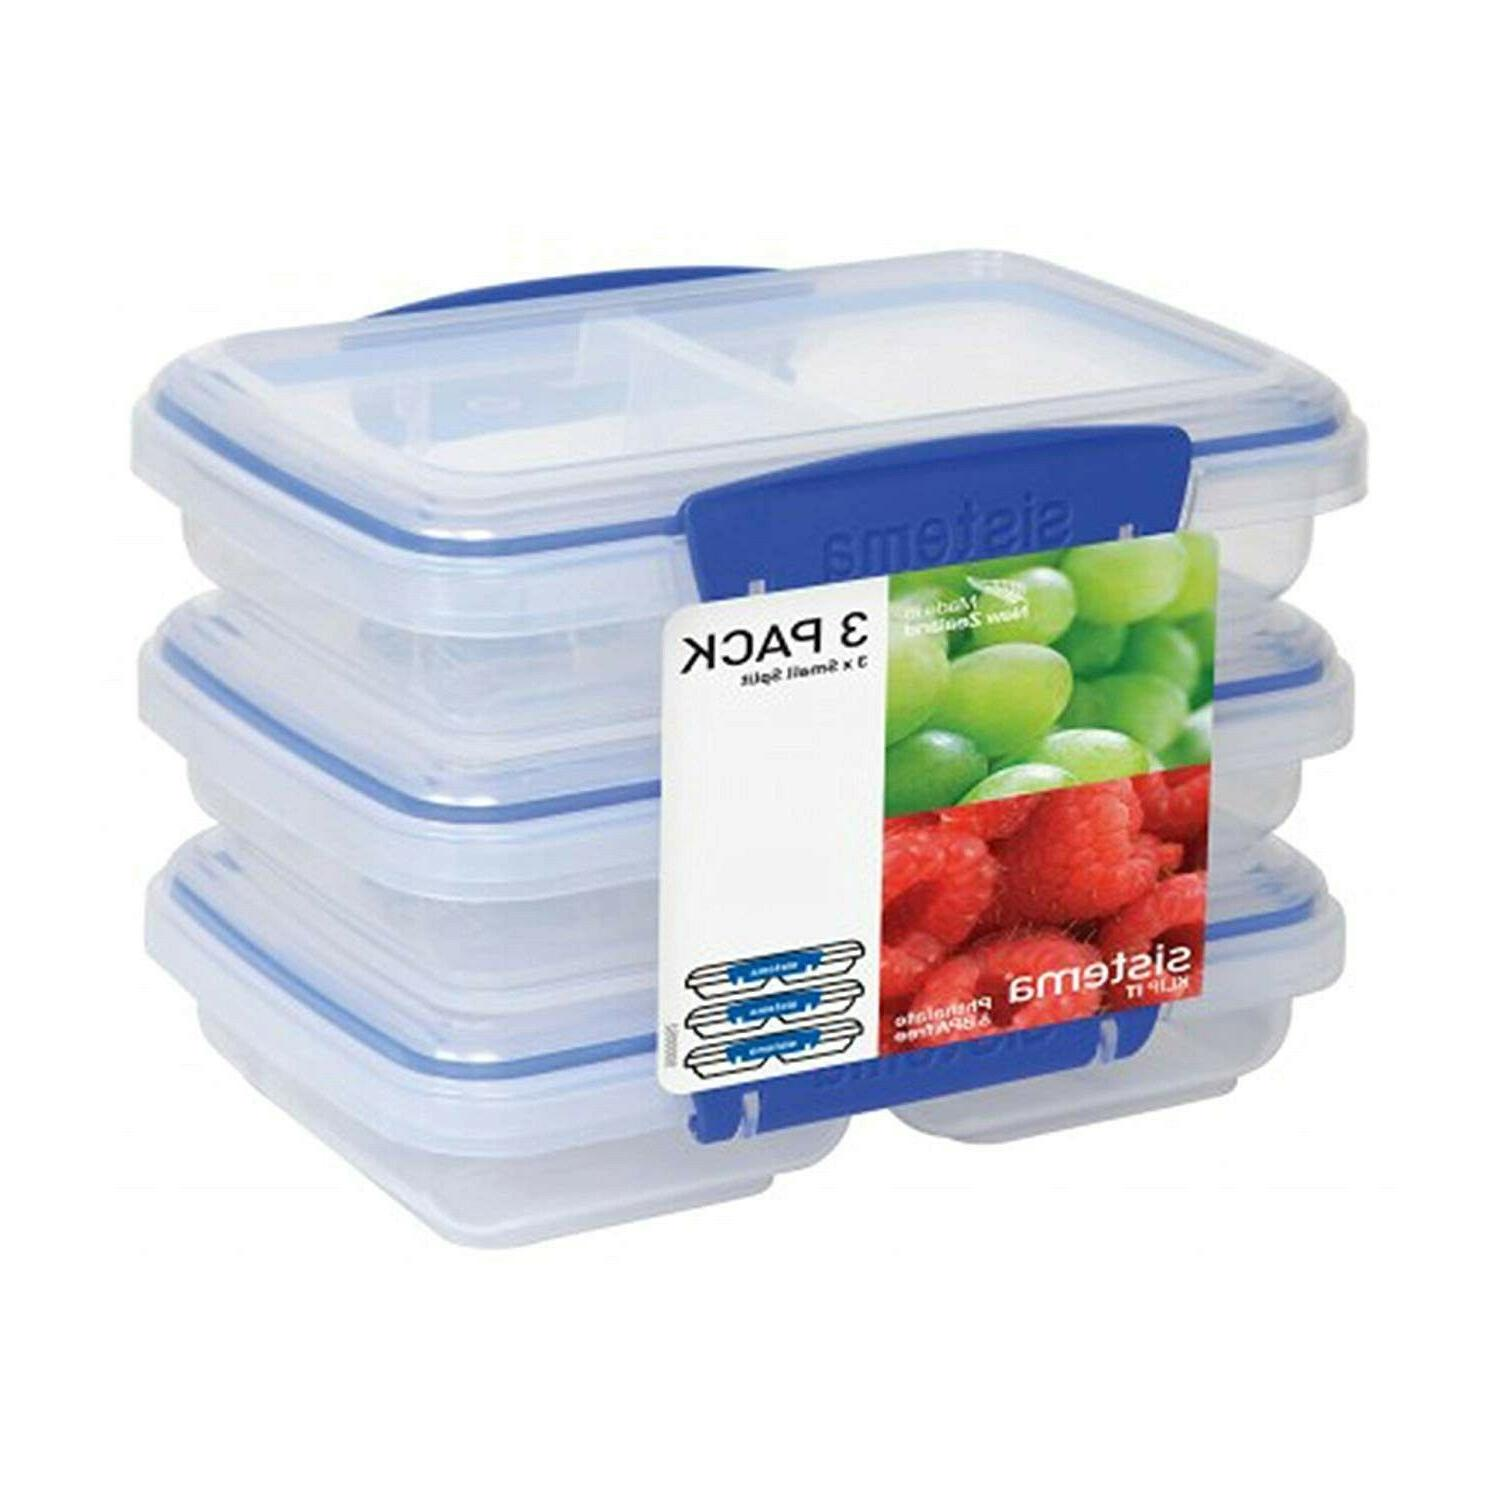 Meal Prep Containers Food Storage Reusable Microwave Safe 2